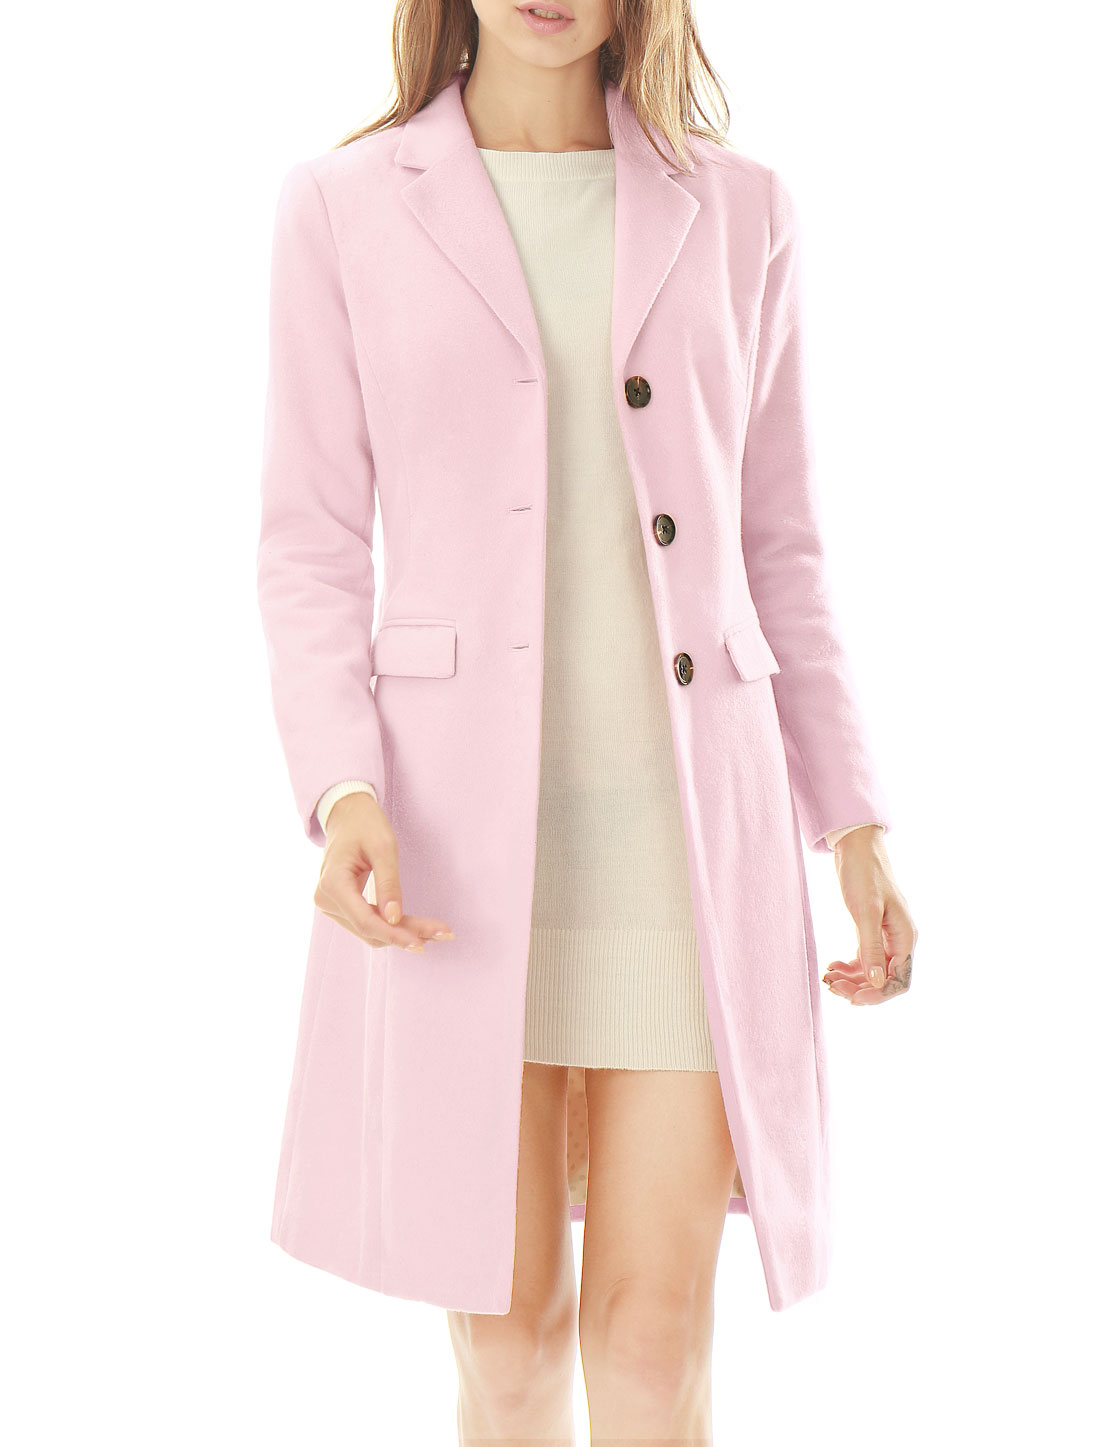 Women Notched Lapel Button Closure Worsted Long Coat Light Pink XL